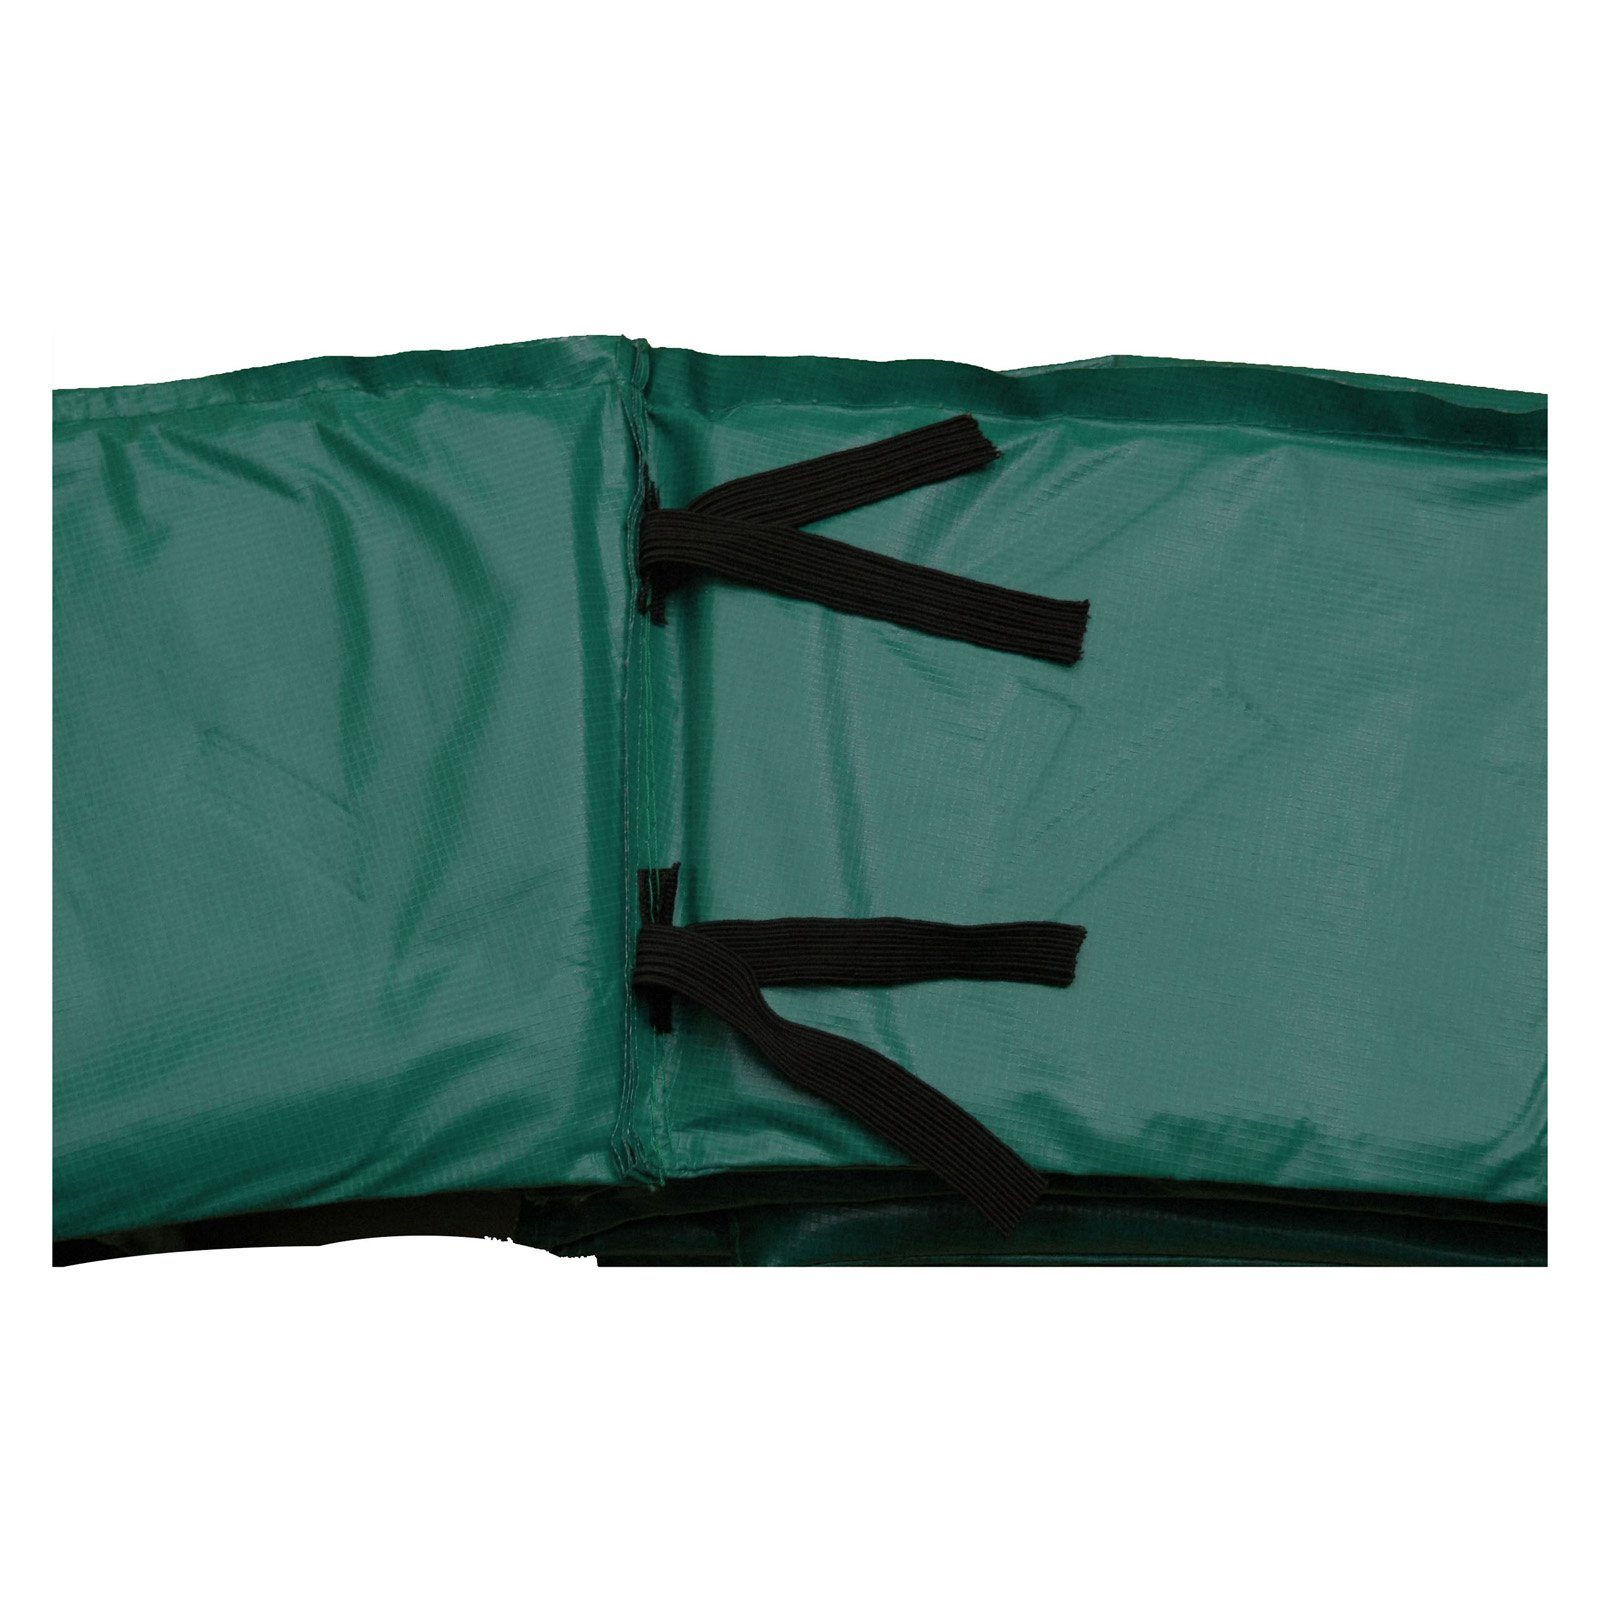 Upper Bounce 10 in. Wide Super Trampoline Safety Pad for Round Trampoline Frames - Green